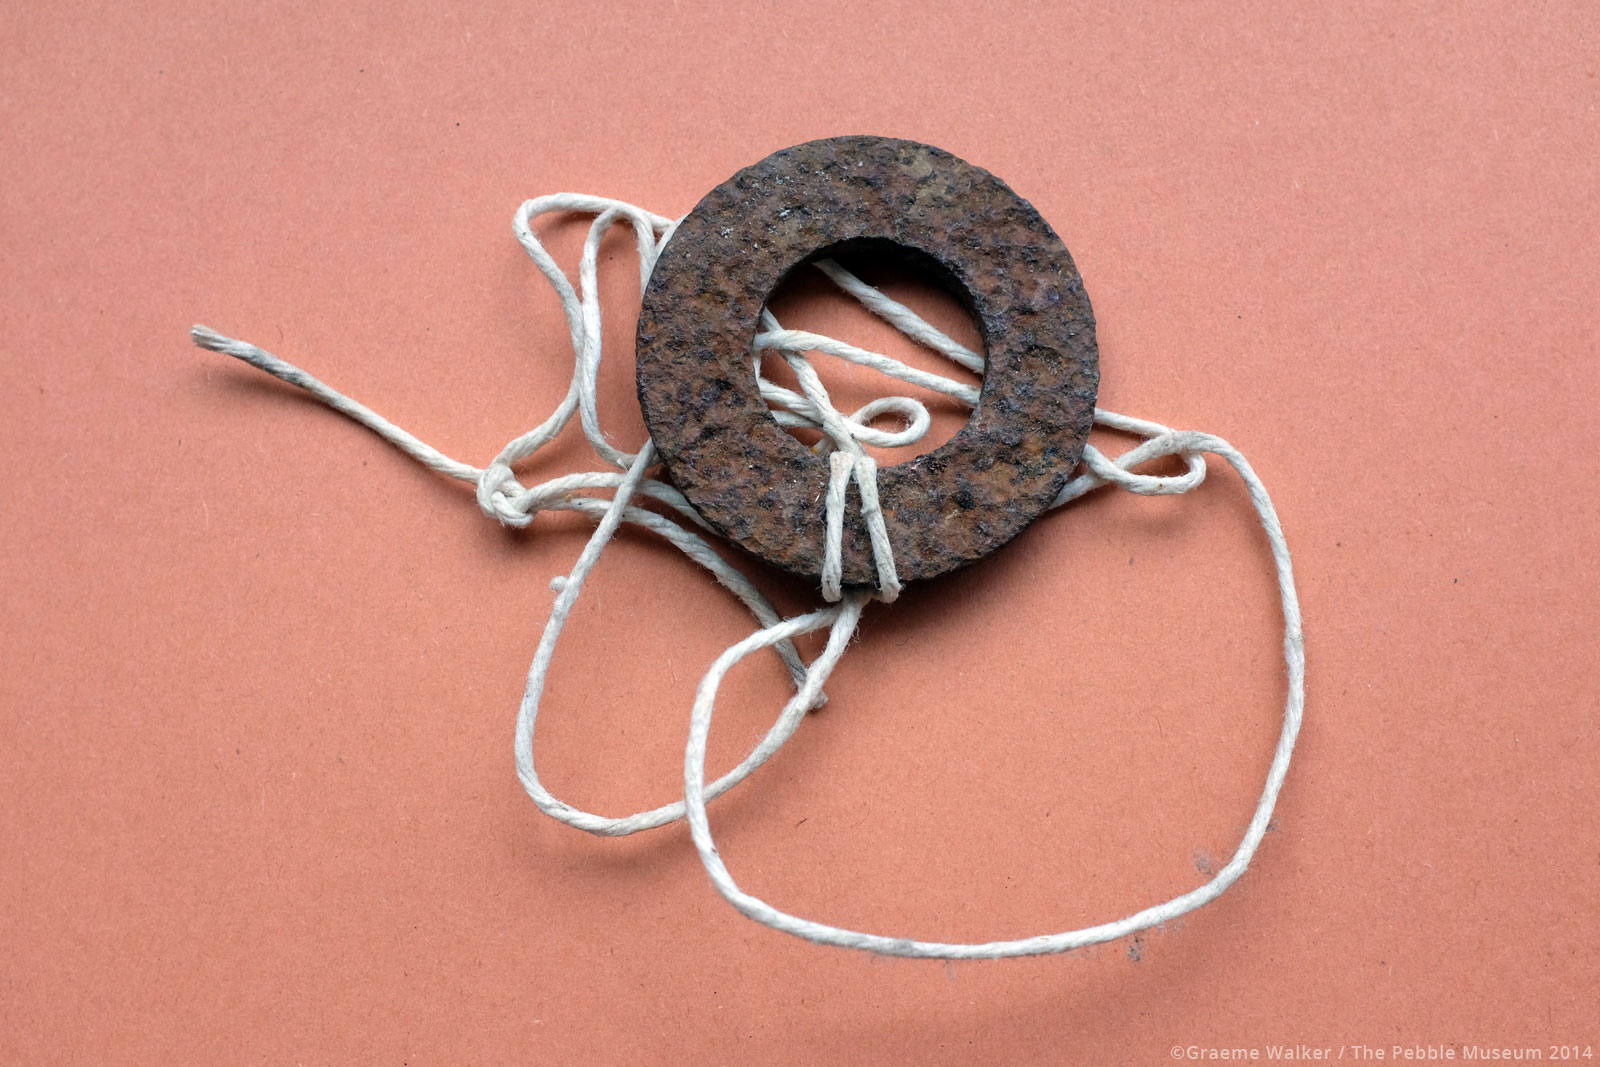 Metal Washer with String © Graeme Walker / The Pebble Museum 2019